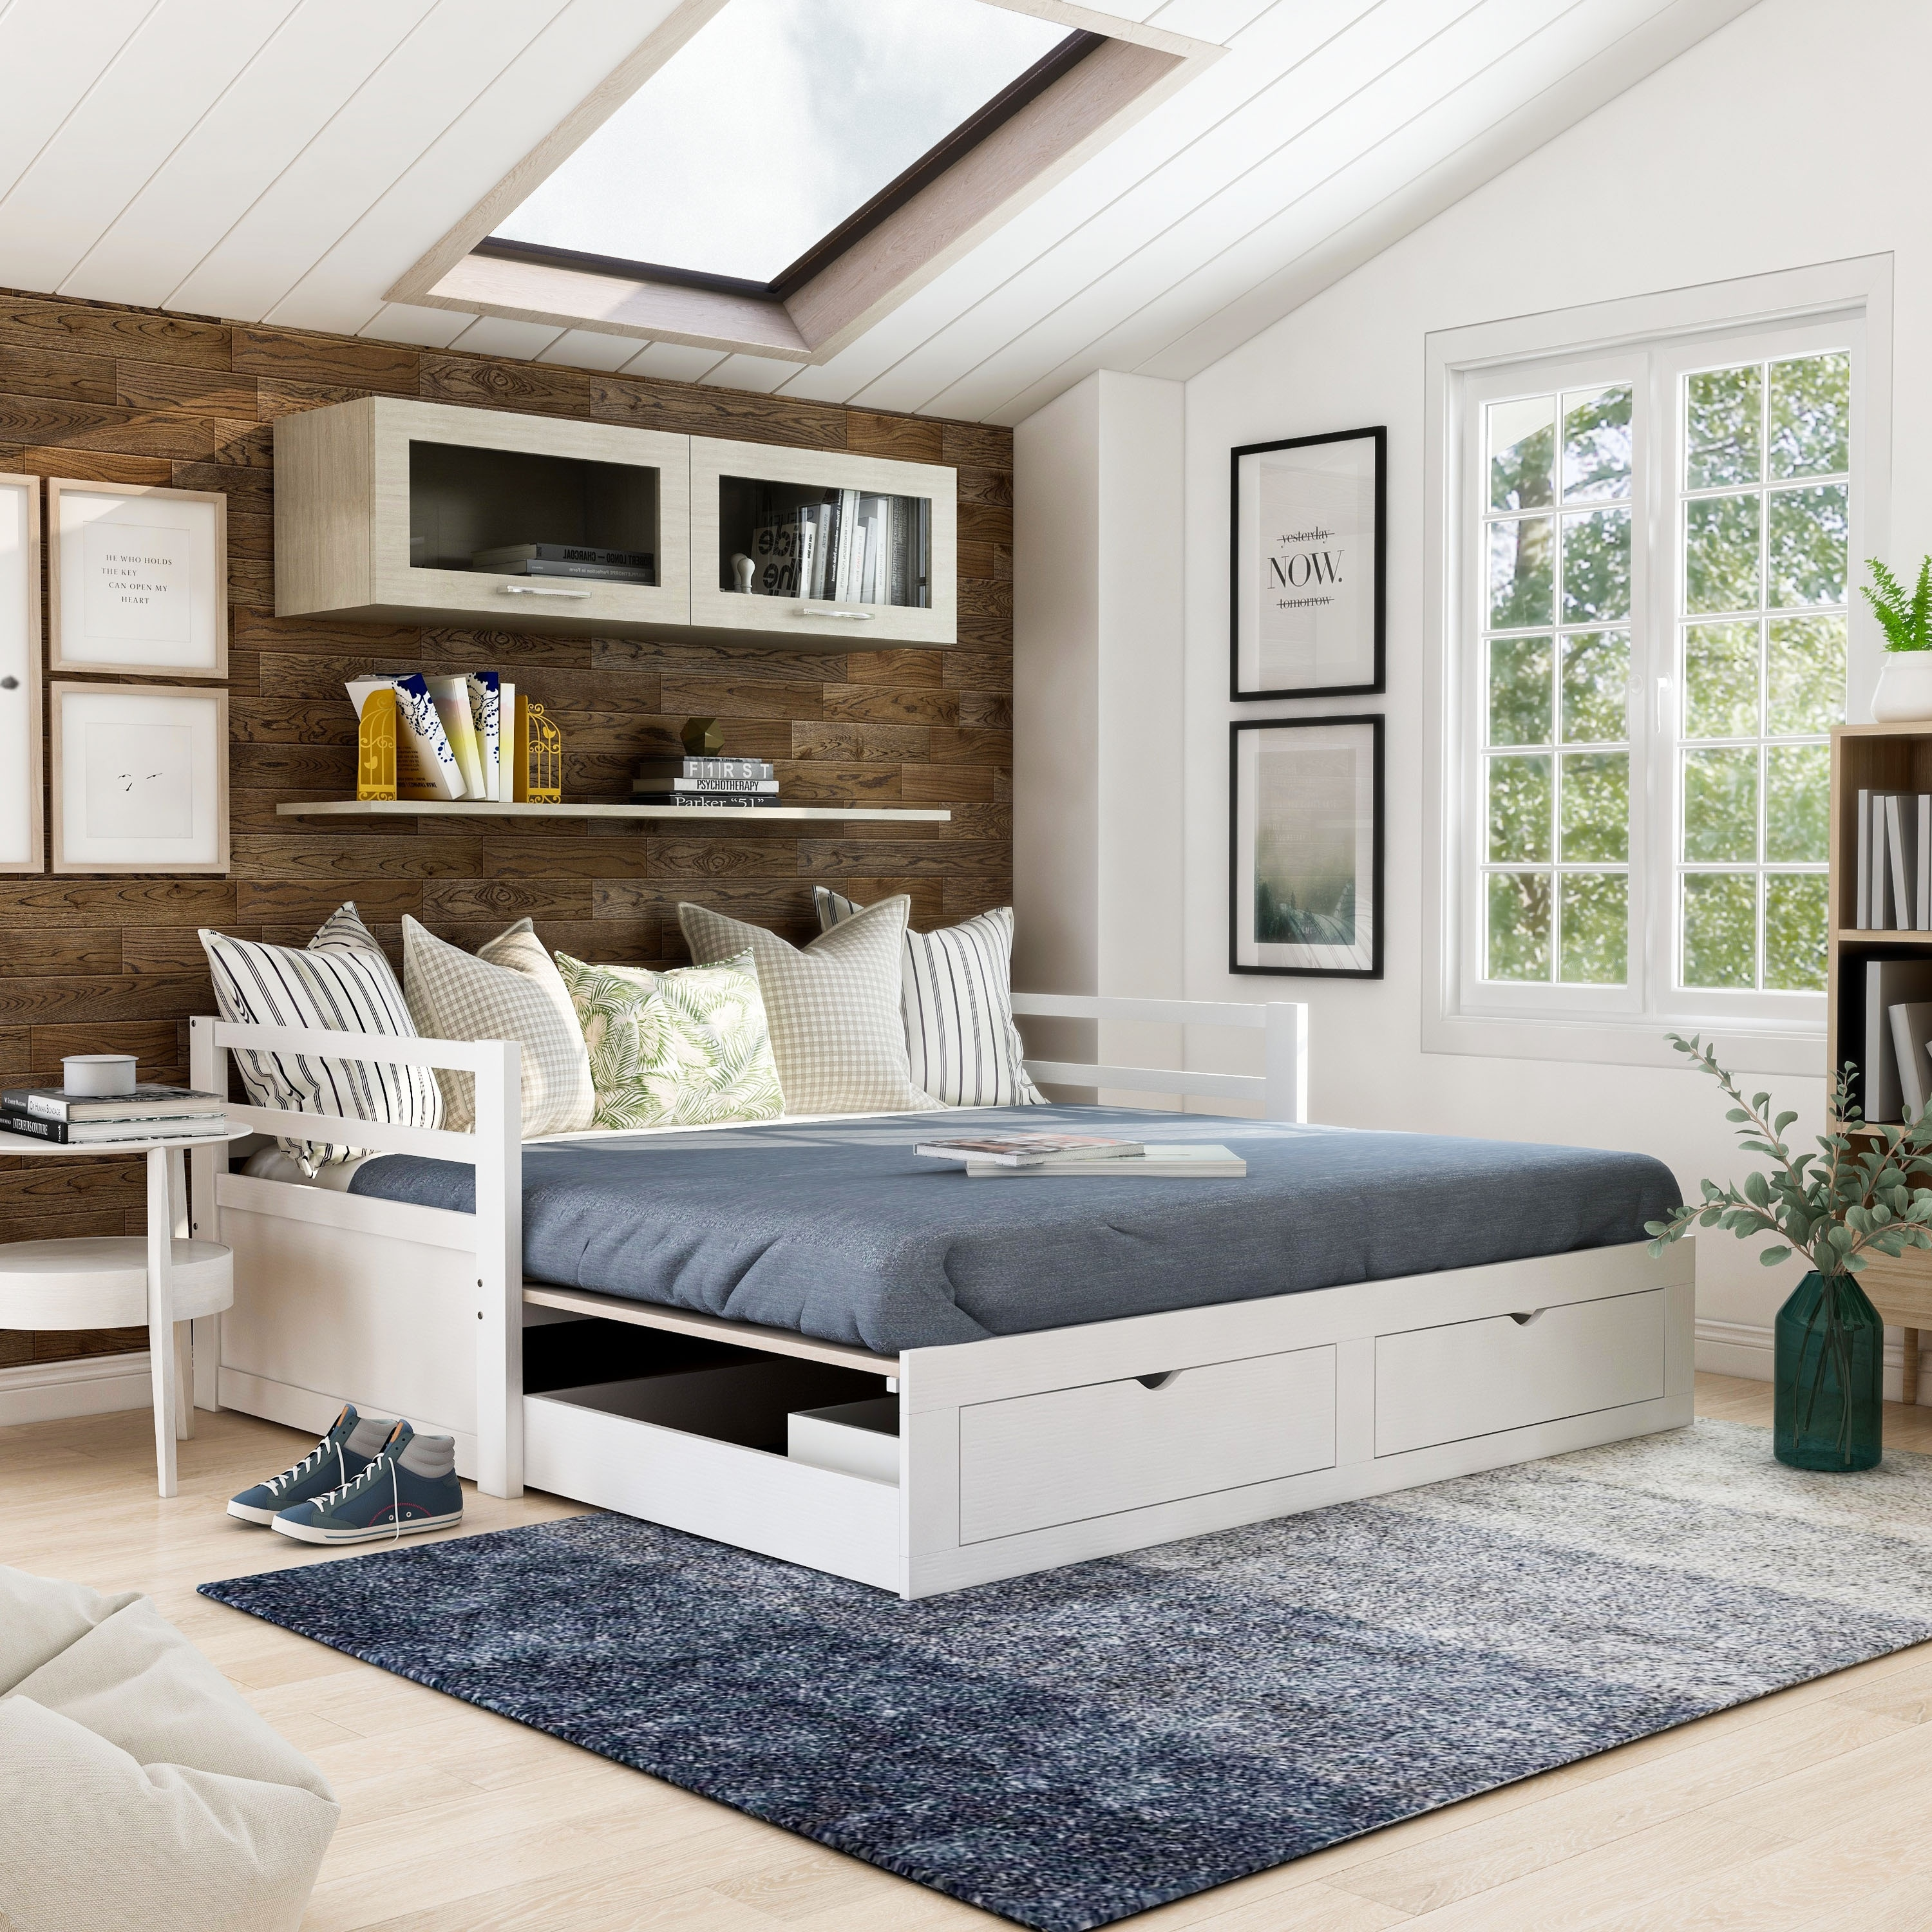 Furniture Of America Soma Twin King Expandable Daybed With Trundle On Sale Overstock 31263446